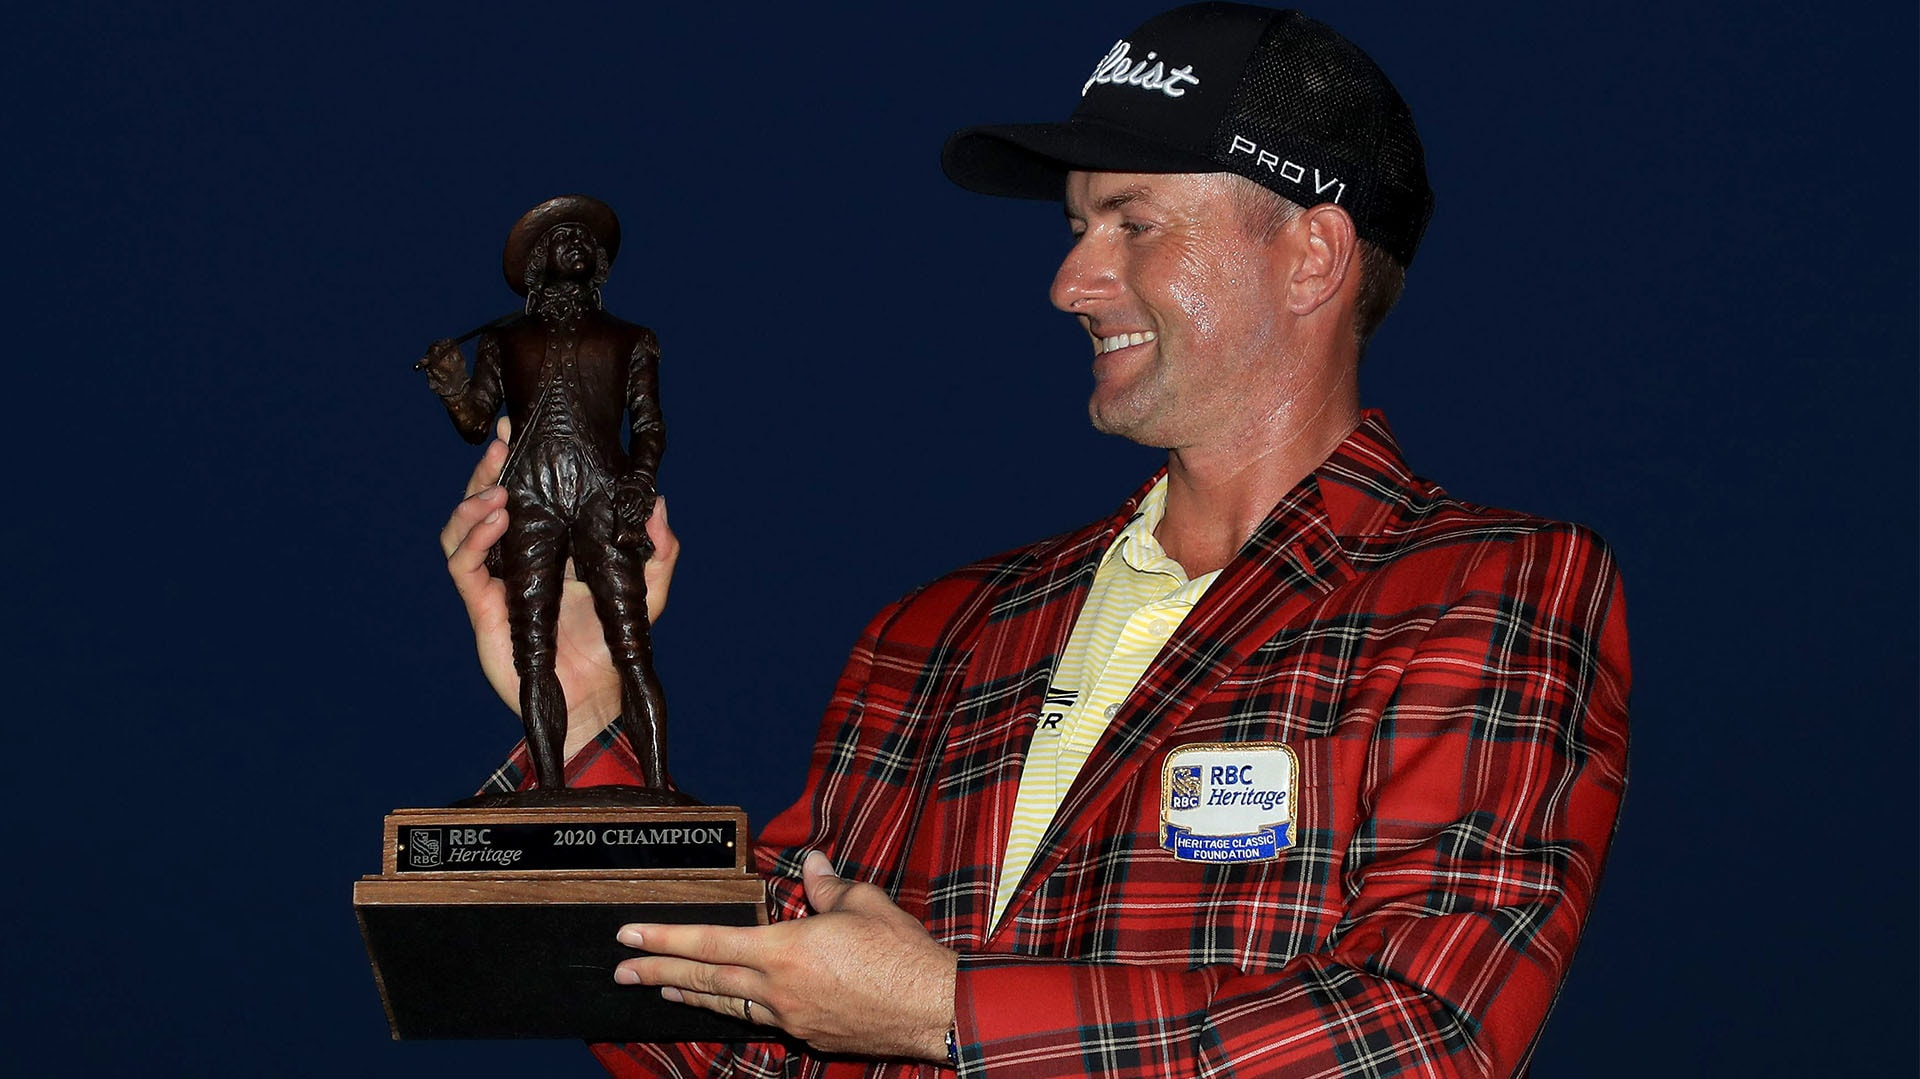 Webb Simpson with the RBC Heritage trophy and tartan jacket